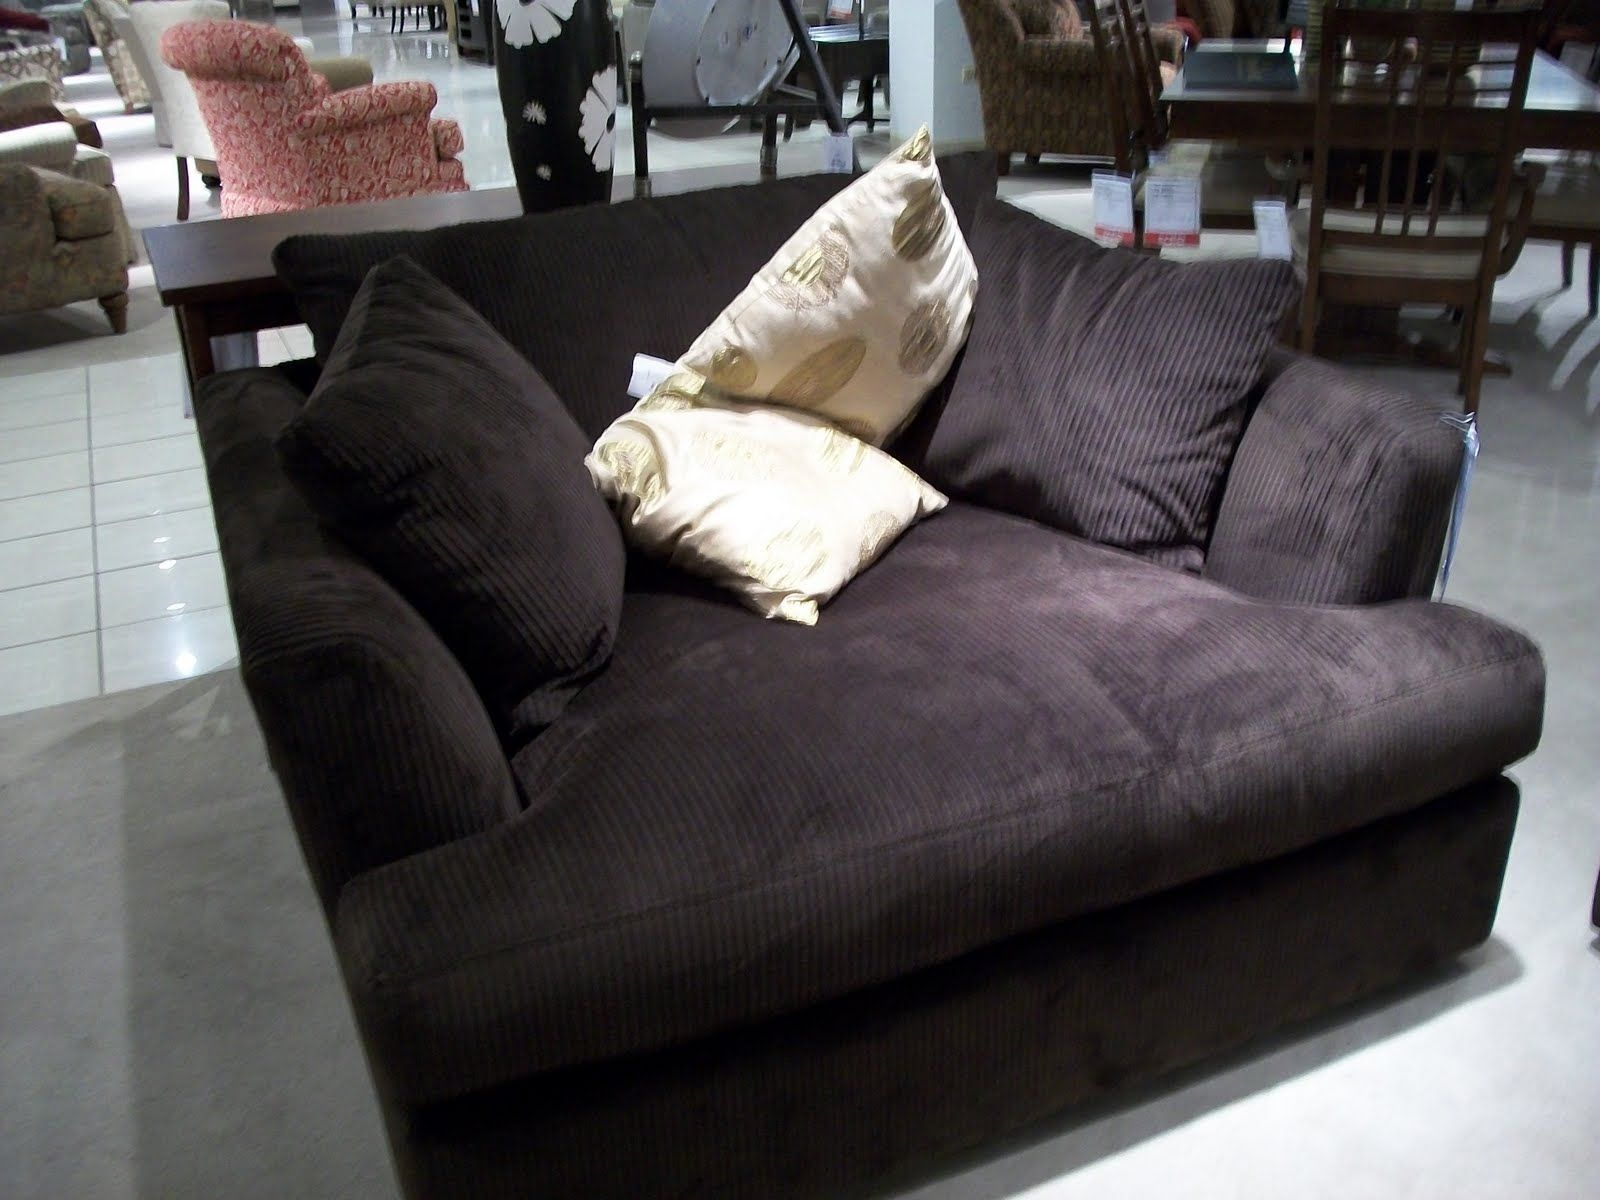 Big Sofa Chair Big Comfy Oversized Armchair Where You Can Snuggle Up With